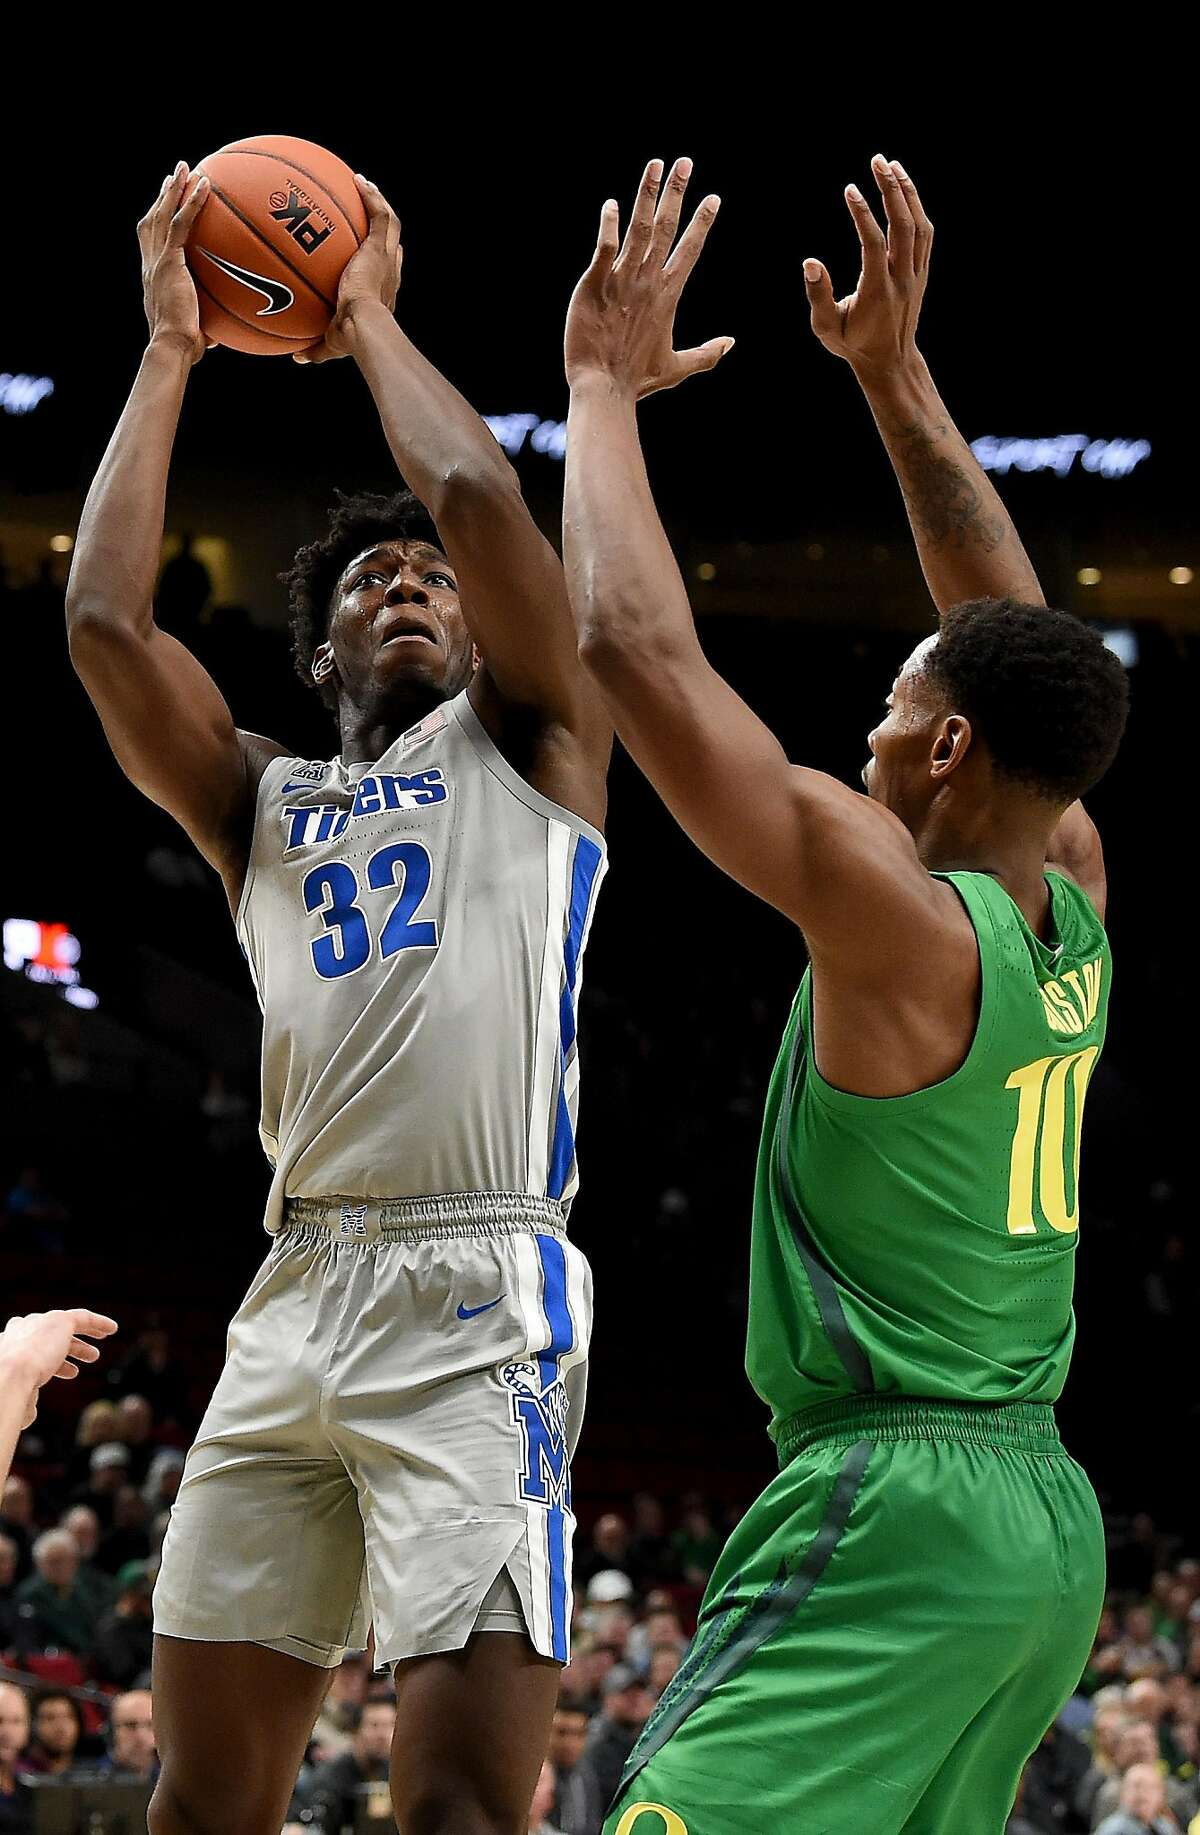 PORTLAND, OREGON - NOVEMBER 12: James Wiseman #32 of the Memphis Tigers shoots the ball over Shakur Juiston #10 of the Oregon Ducks during the first half of the game at Moda Center on November 12, 2019 in Portland, Oregon. ~~